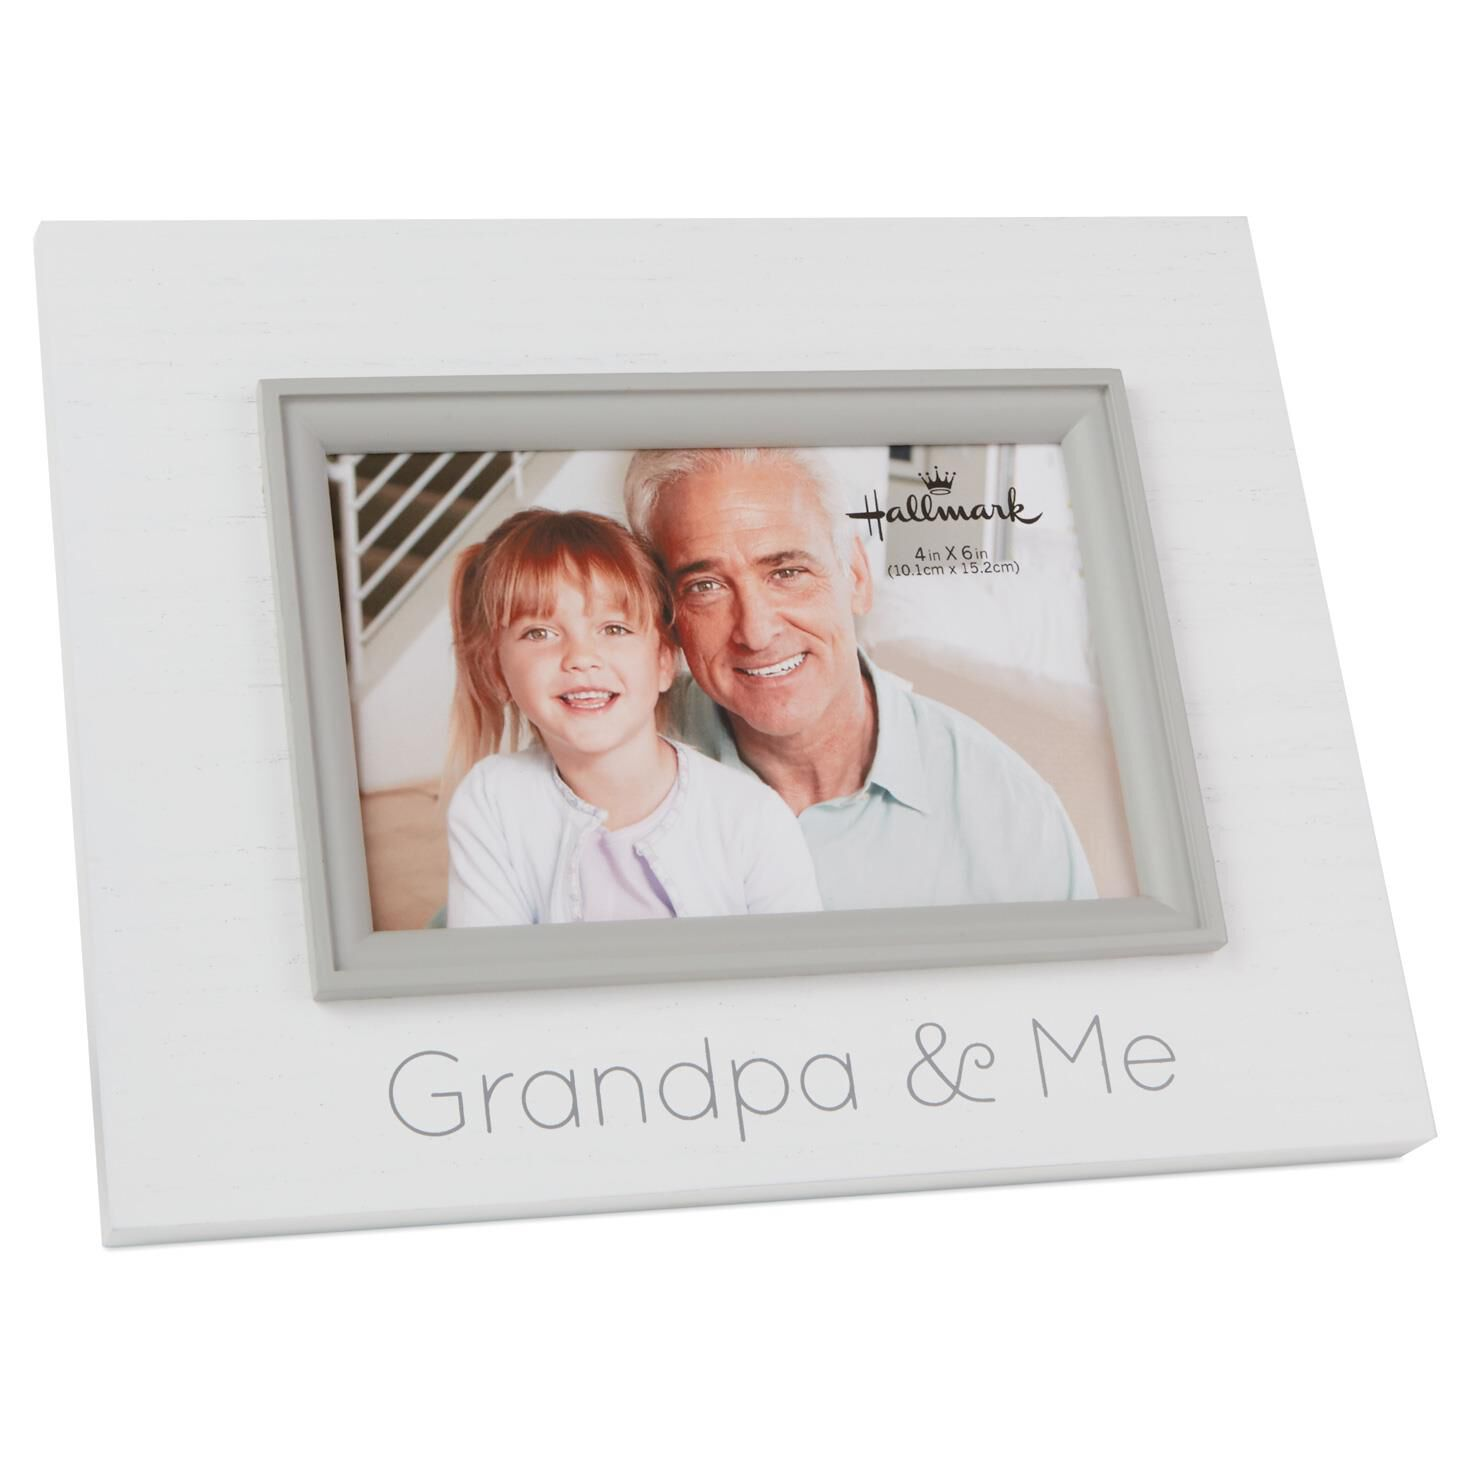 Grandpa and Me Wood Photo Frame, 4x6 - Picture Frames - Hallmark